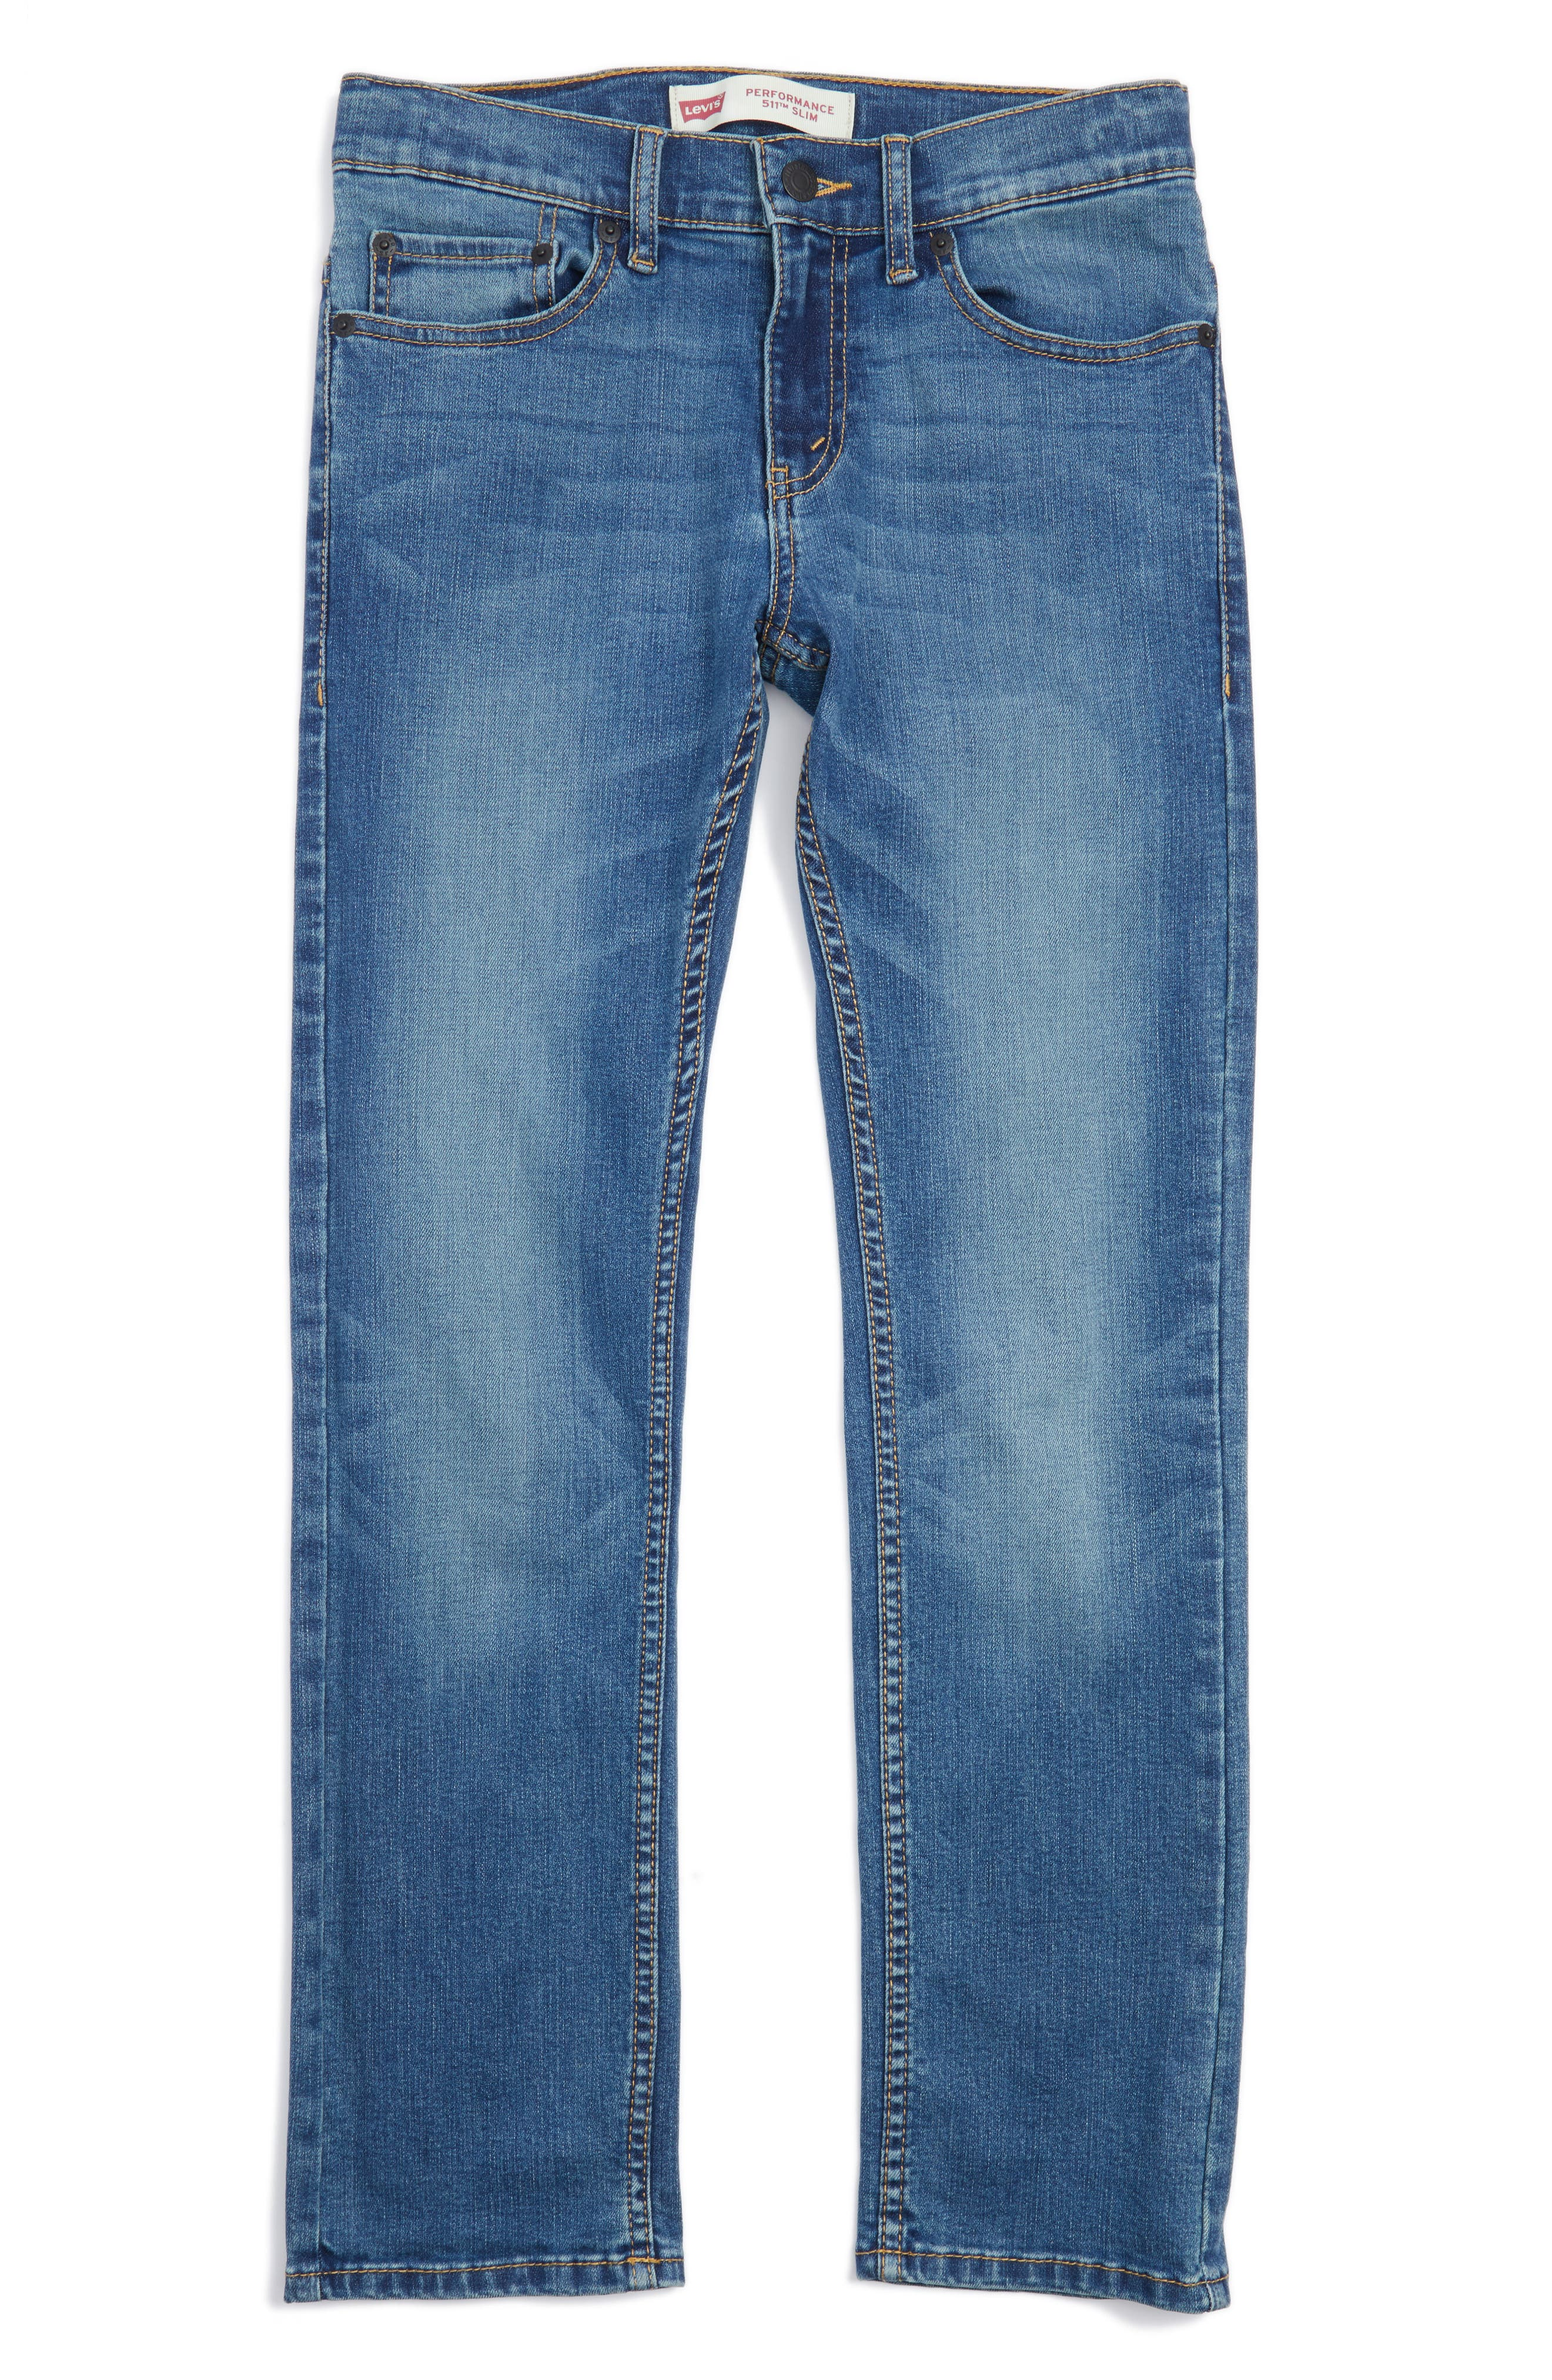 '511<sup>™</sup>' Slim Fit Jeans,                         Main,                         color, Obsidian